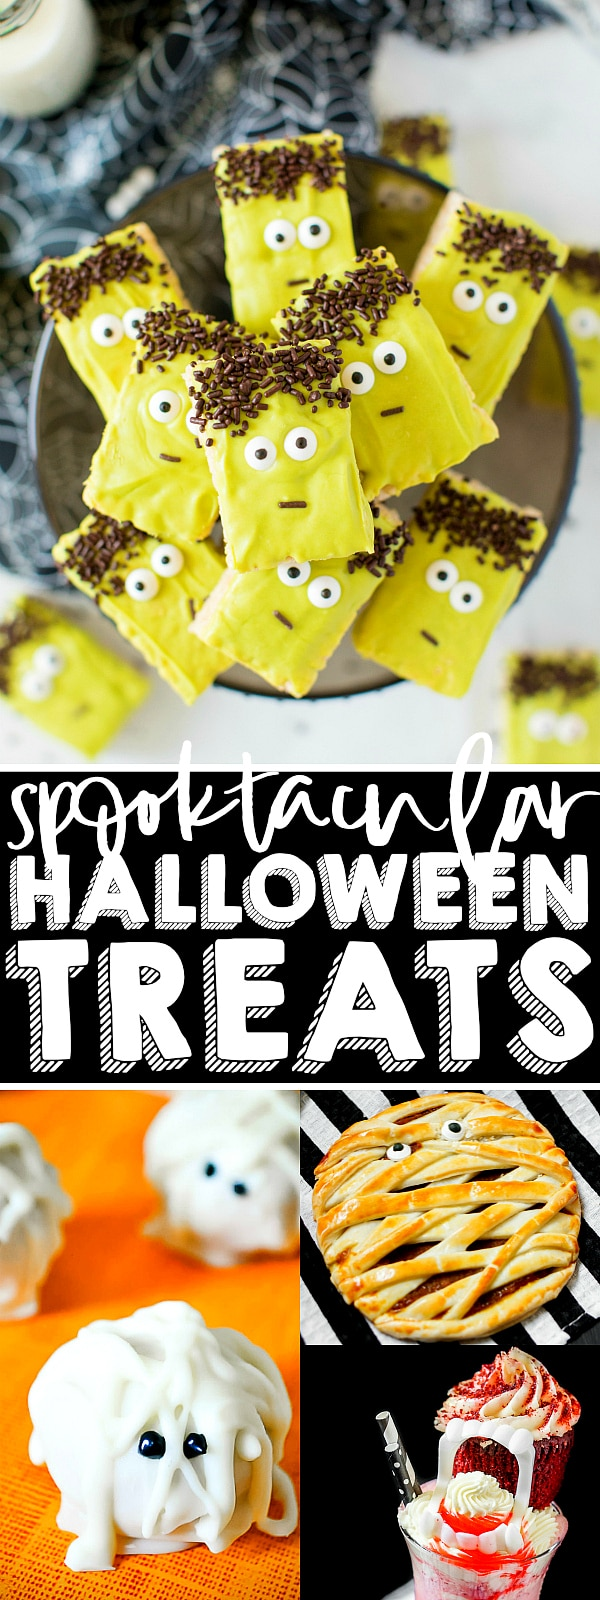 The Ultimate List of SPOOKTACULAR Halloween Treats! From cupcakes and cookies to truffles to pies, we have you covered with everything you need to make an amazing Halloween dessert table to spook and awe your guests! | The Love Nerds #halloweendessert